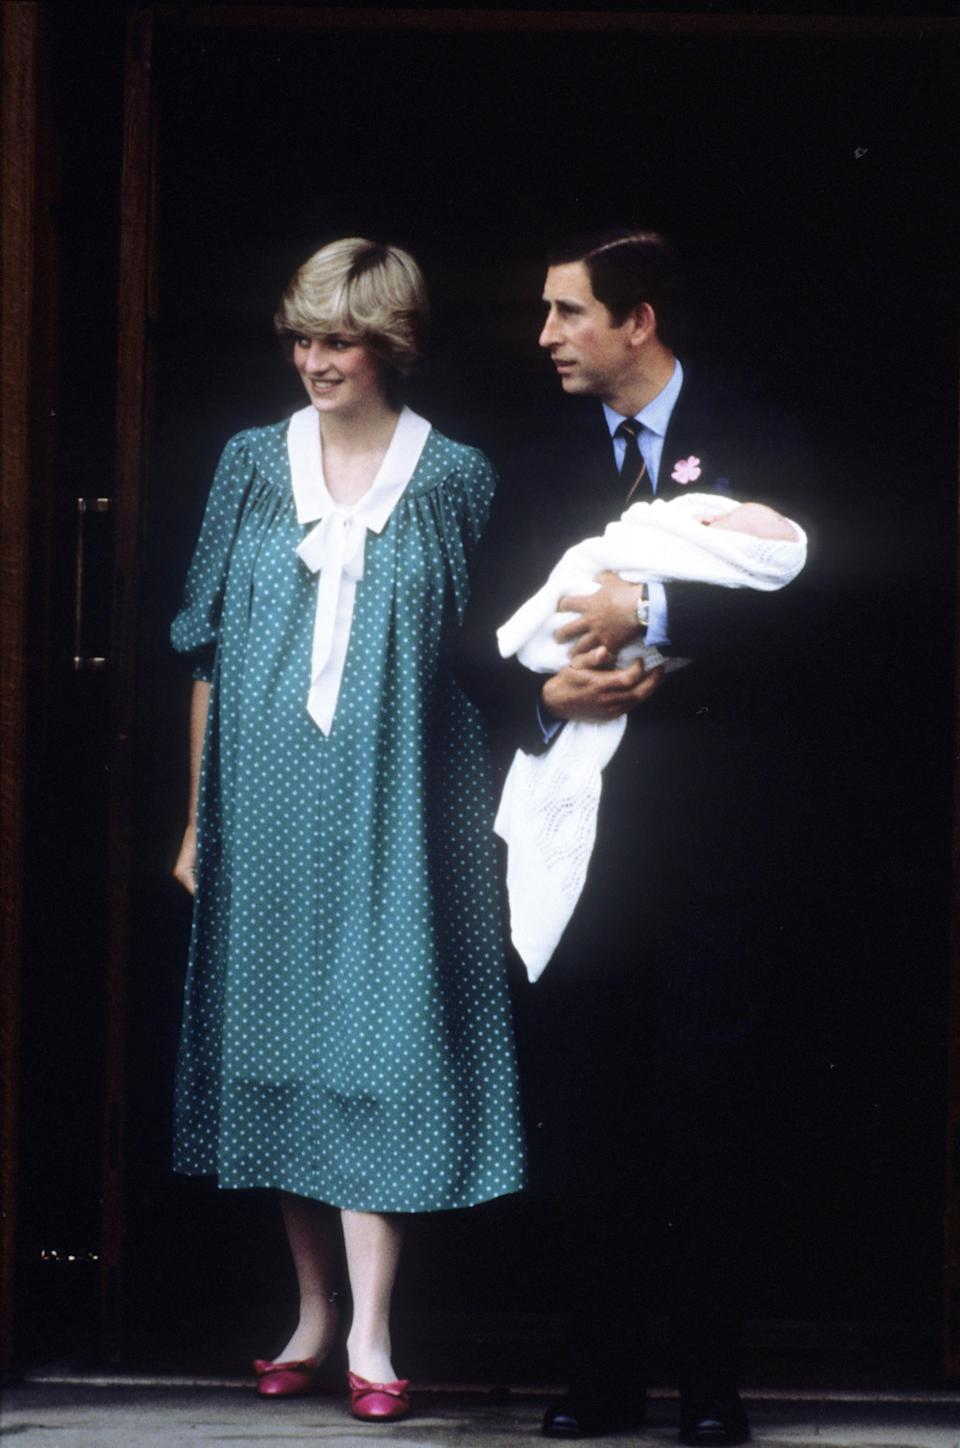 """<p>The 20-year-old mom took a completely modern, intimate view of child-rearing from the very beginning. She chose her sons' first names herself and breastfed them as infants. (Charles wanted Arthur for their firstborn, Albert for the second.) And she didn't follow how Queen Elizabeth II handled Prince Charles' early years: When Charles was two, his mother flew to Malta to spend Christmas with his father, leaving him with his grandparents. """"Diana and Charles bucked the royal trend of separation by taking nine-month-old William, as well as his nanny, with them on the six-week tour to Australia and New Zealand,"""" royal expert Christopher Warwick said. """"William and Harry were very, very fortunate with Diana as a mother because her ideas were so different to the previous generation.""""</p>"""